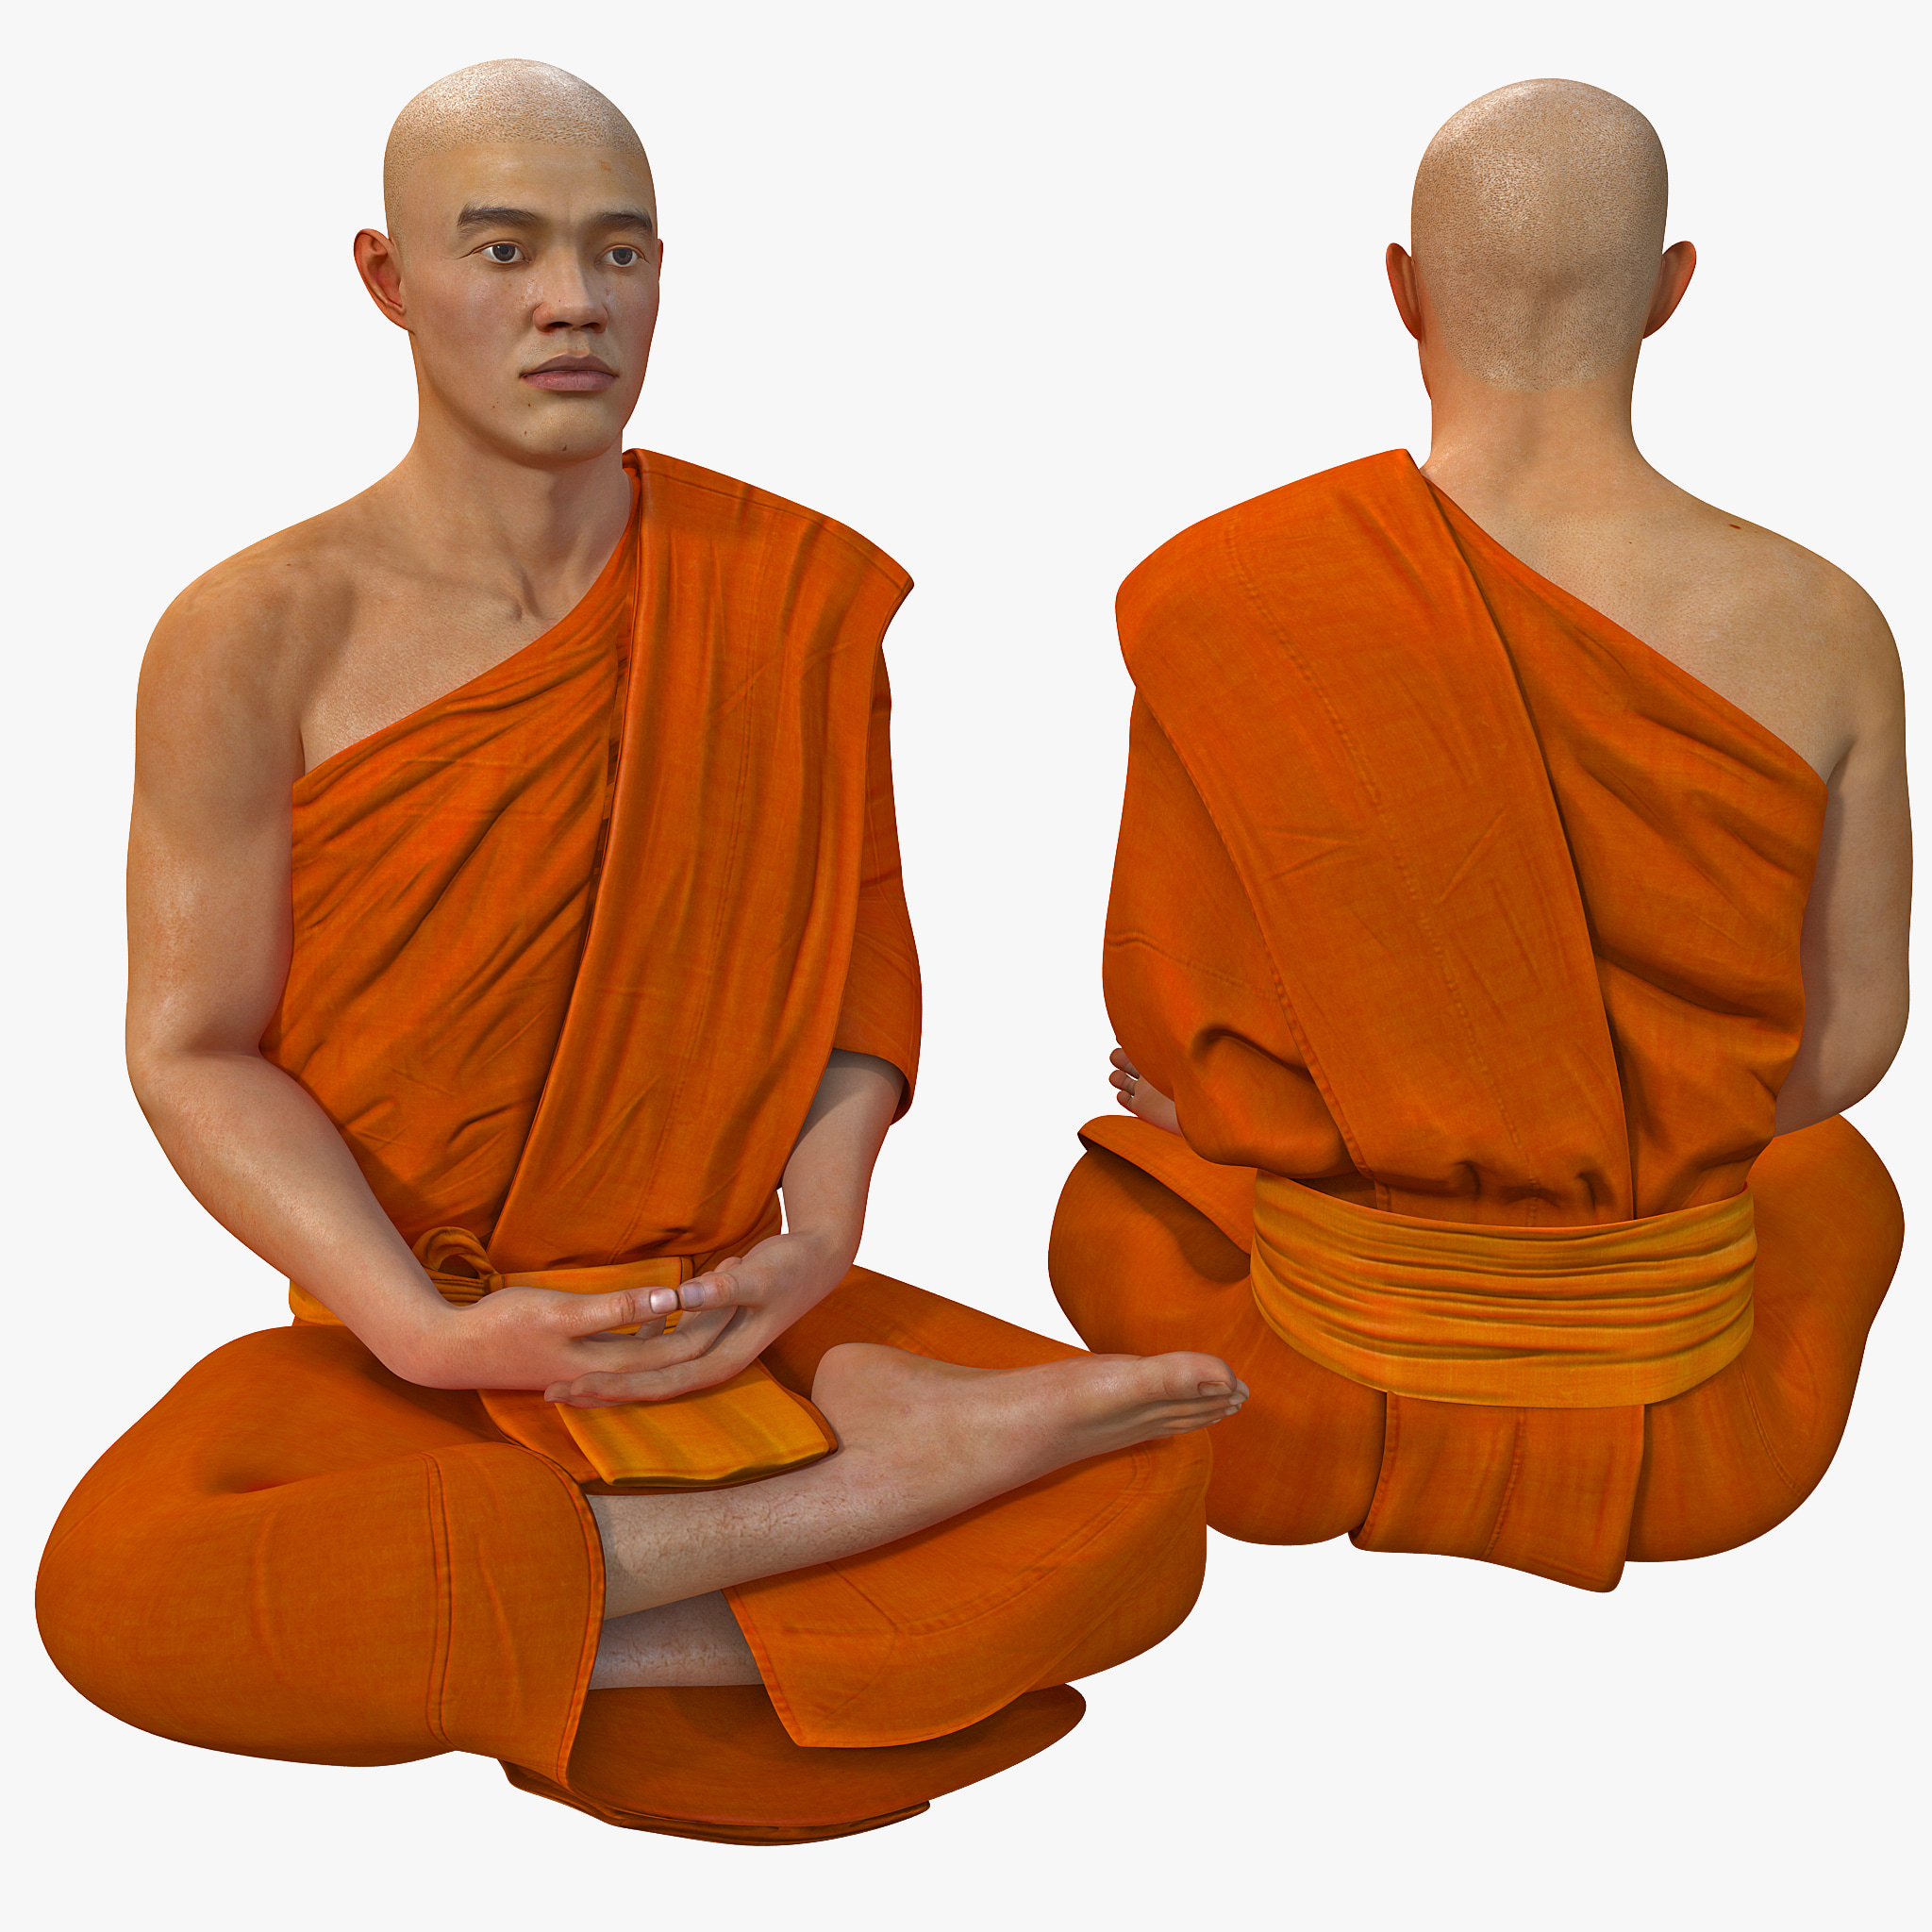 three forks buddhist single men A free guide to three forks adult personals and finding sex partners in three forks with articles and advice about using online adult personals.